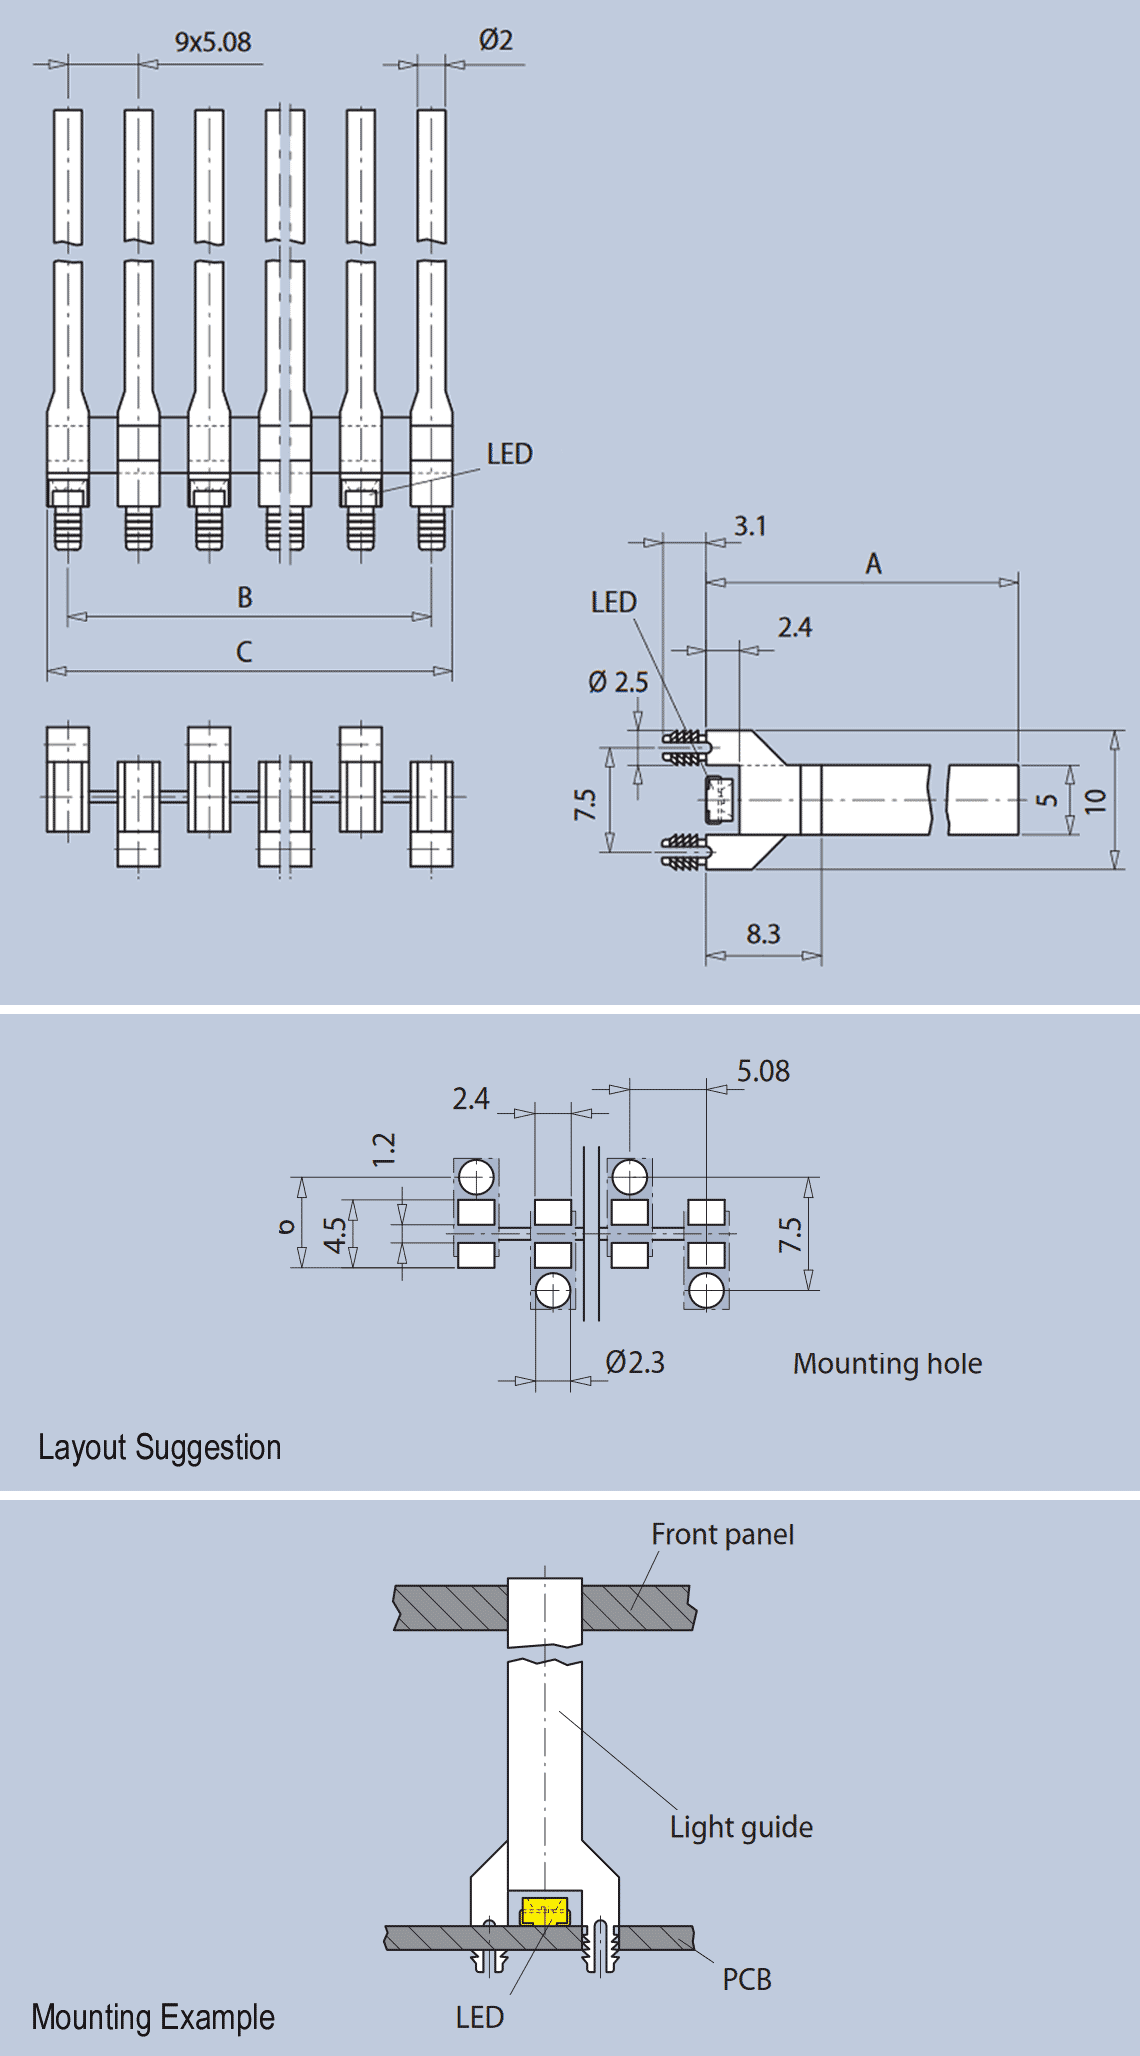 Rectangular Bar Graph Light Guides